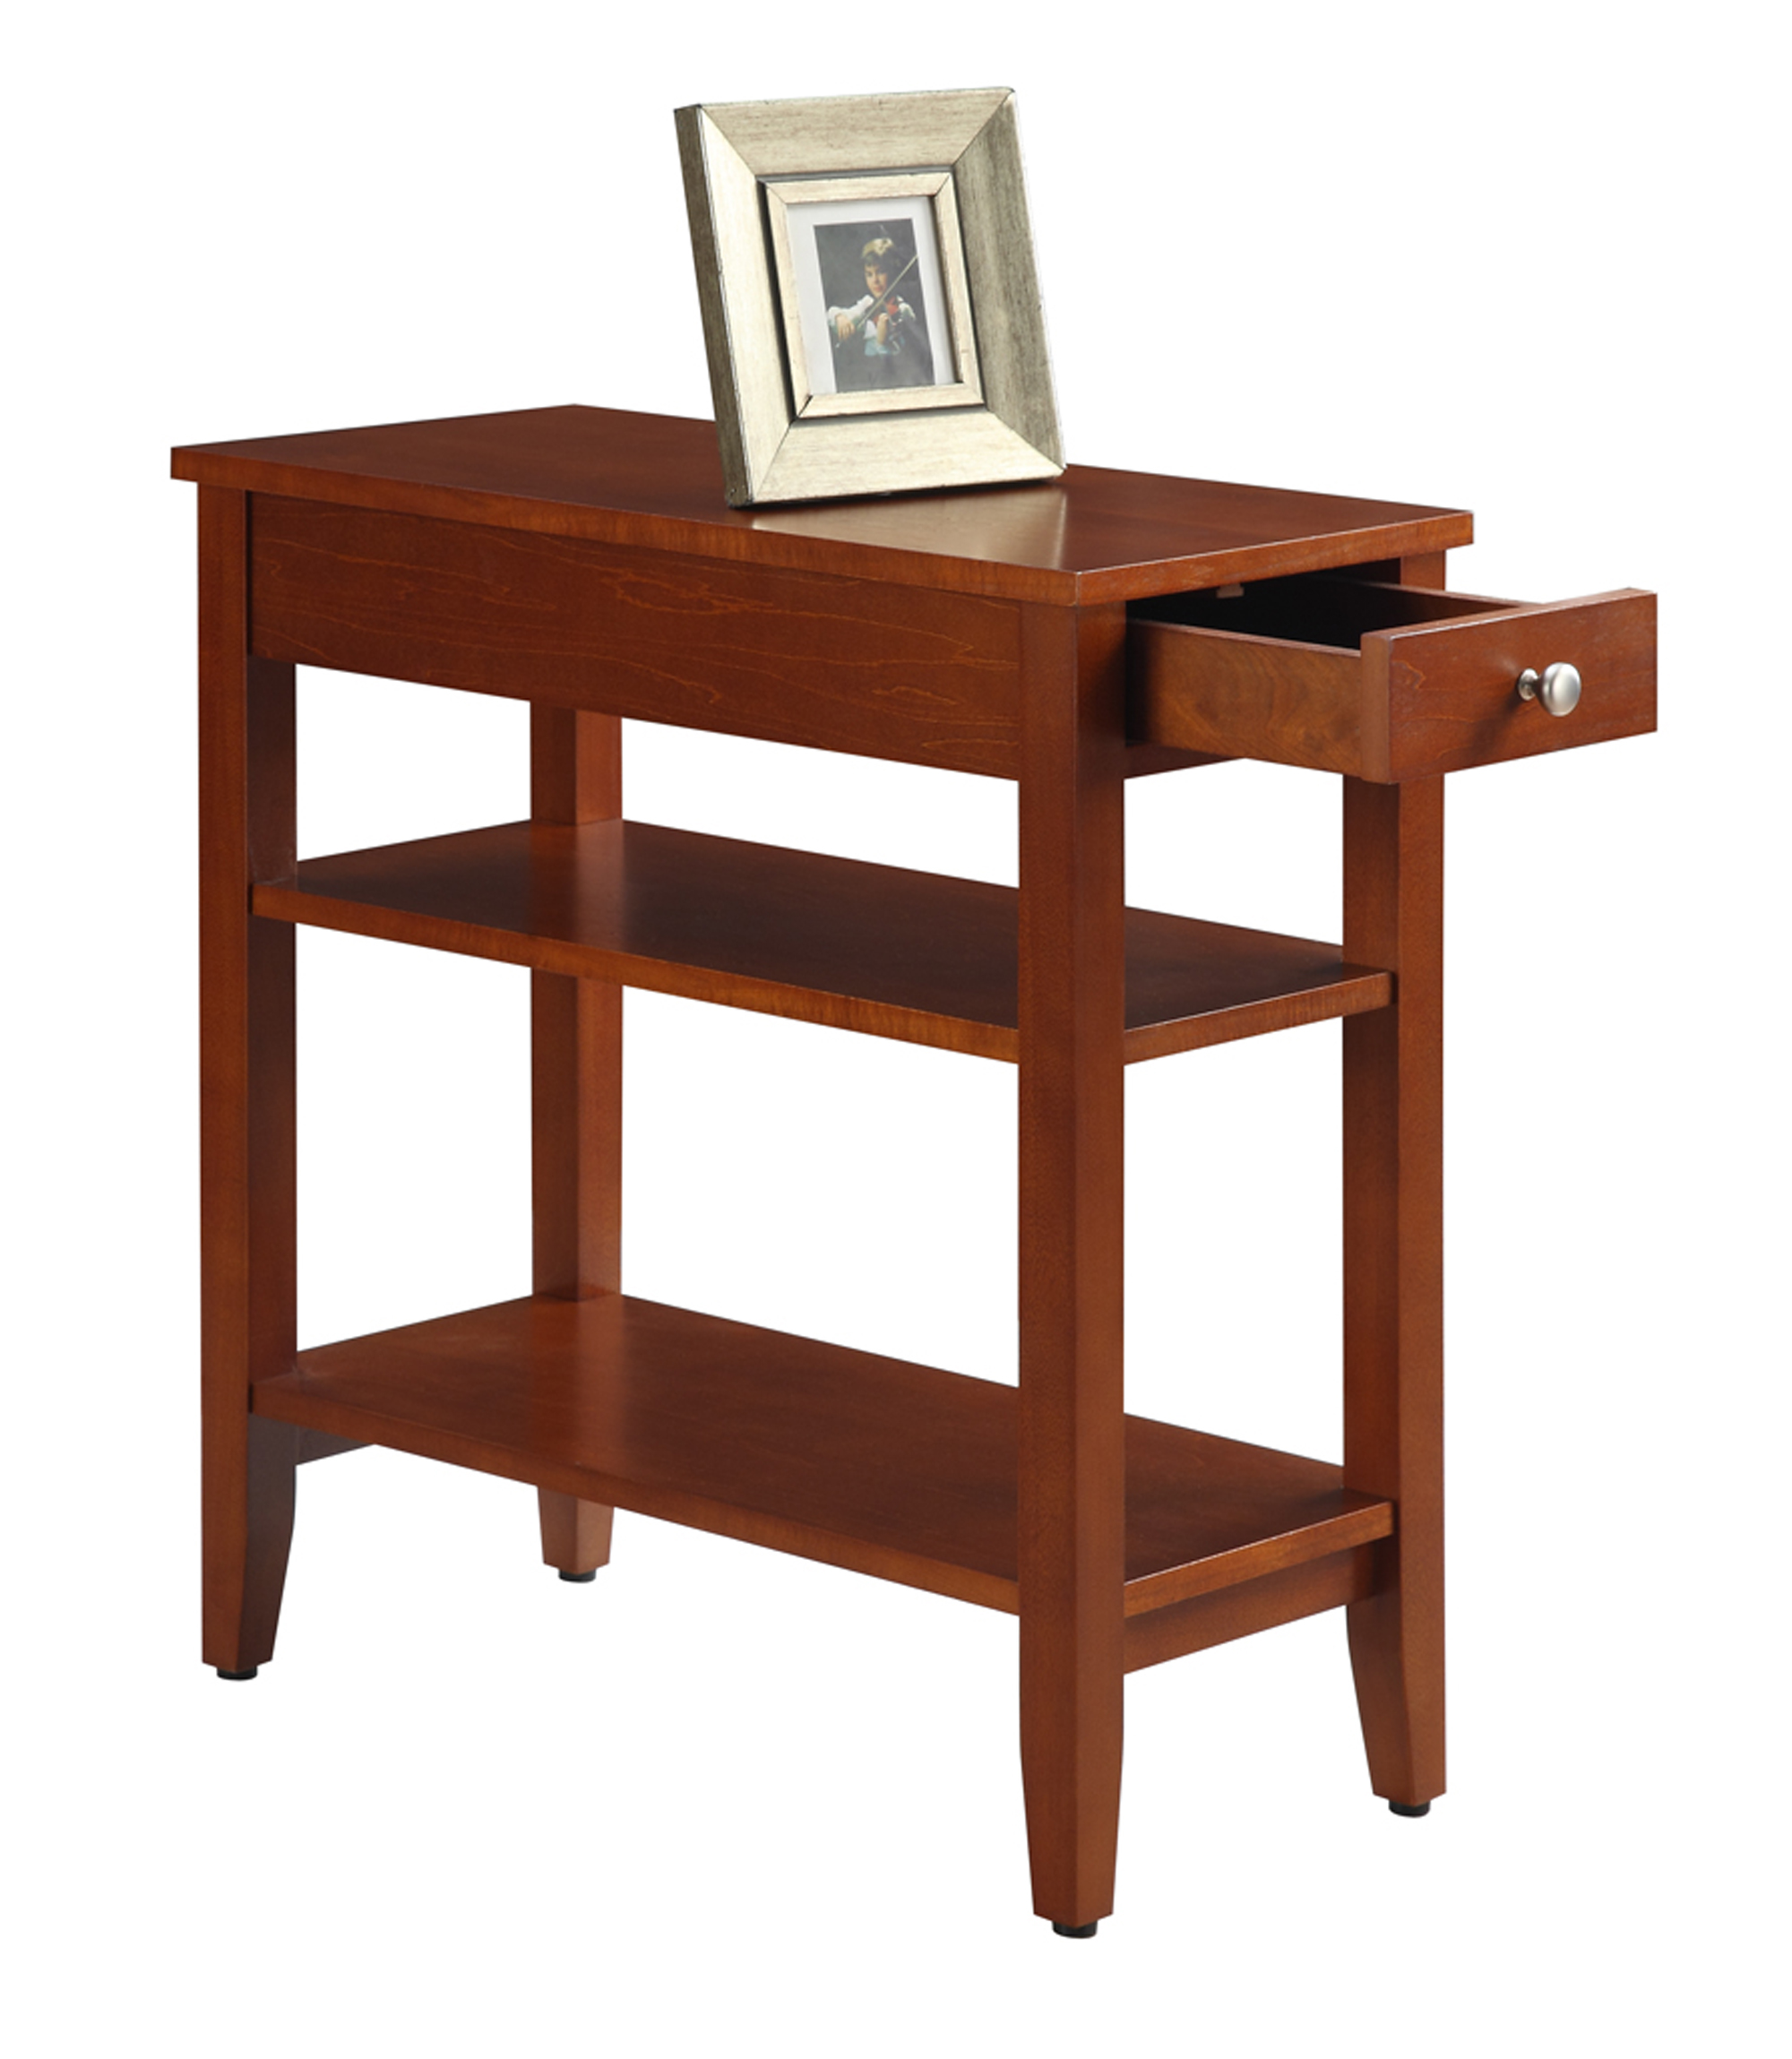 easy pieces espresso drawer end table nightstand platform with american heritage three tier hafley accent target patio tray steel coffee plastic side fancy lamps dale tiffany lily